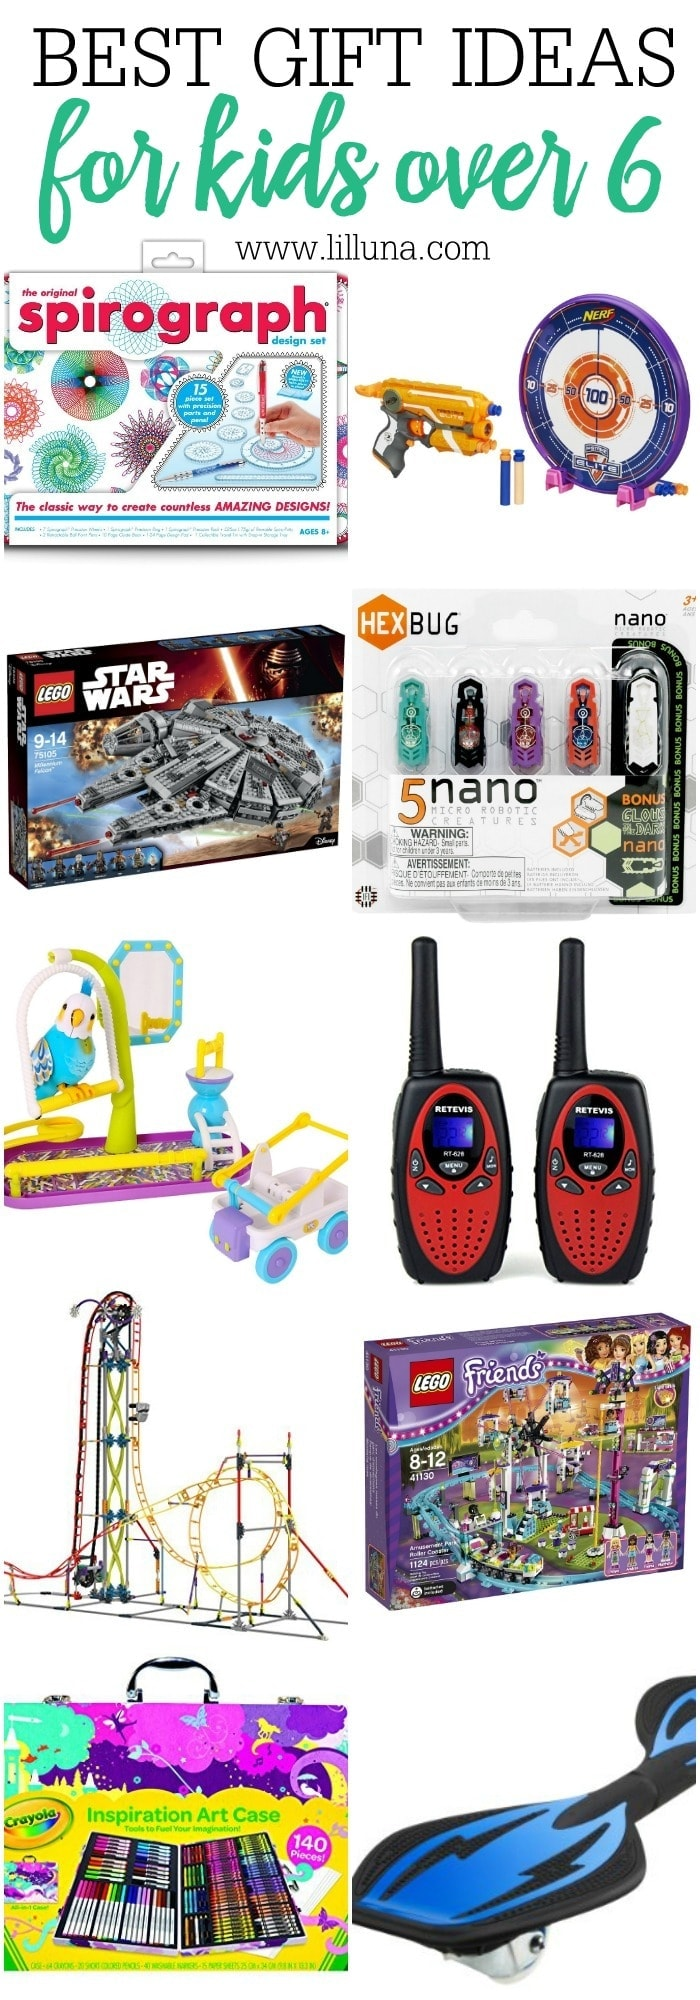 Best Gifts For Kids 6 And Older Great Ideas Christmas Or Even Birthdays